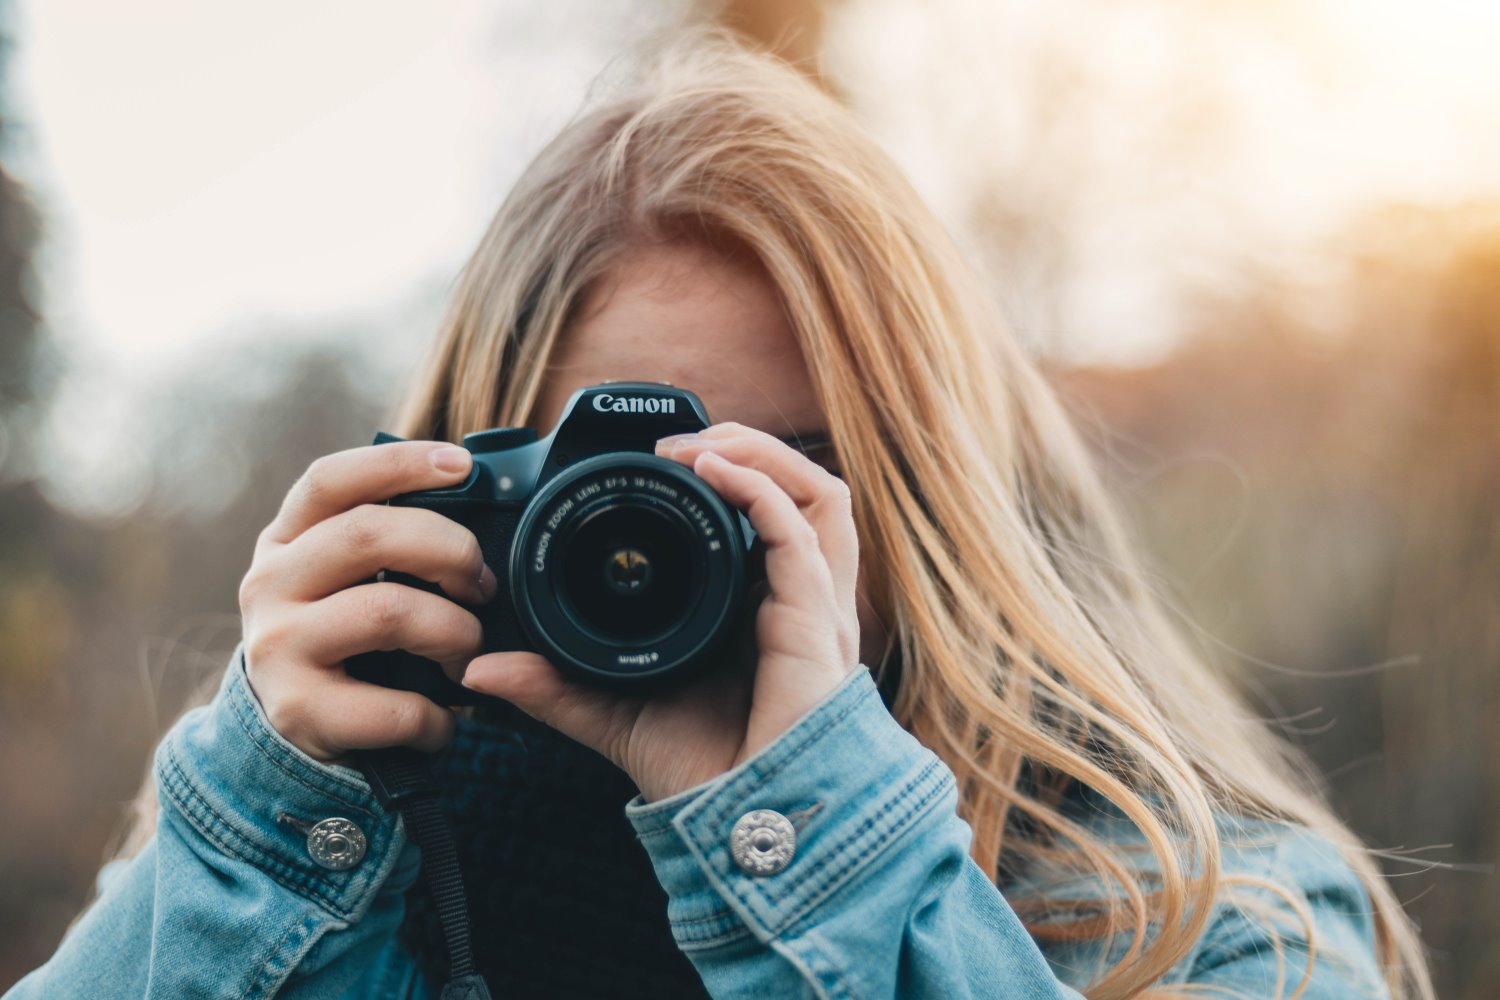 digital photography projects to jumpstart your creativity